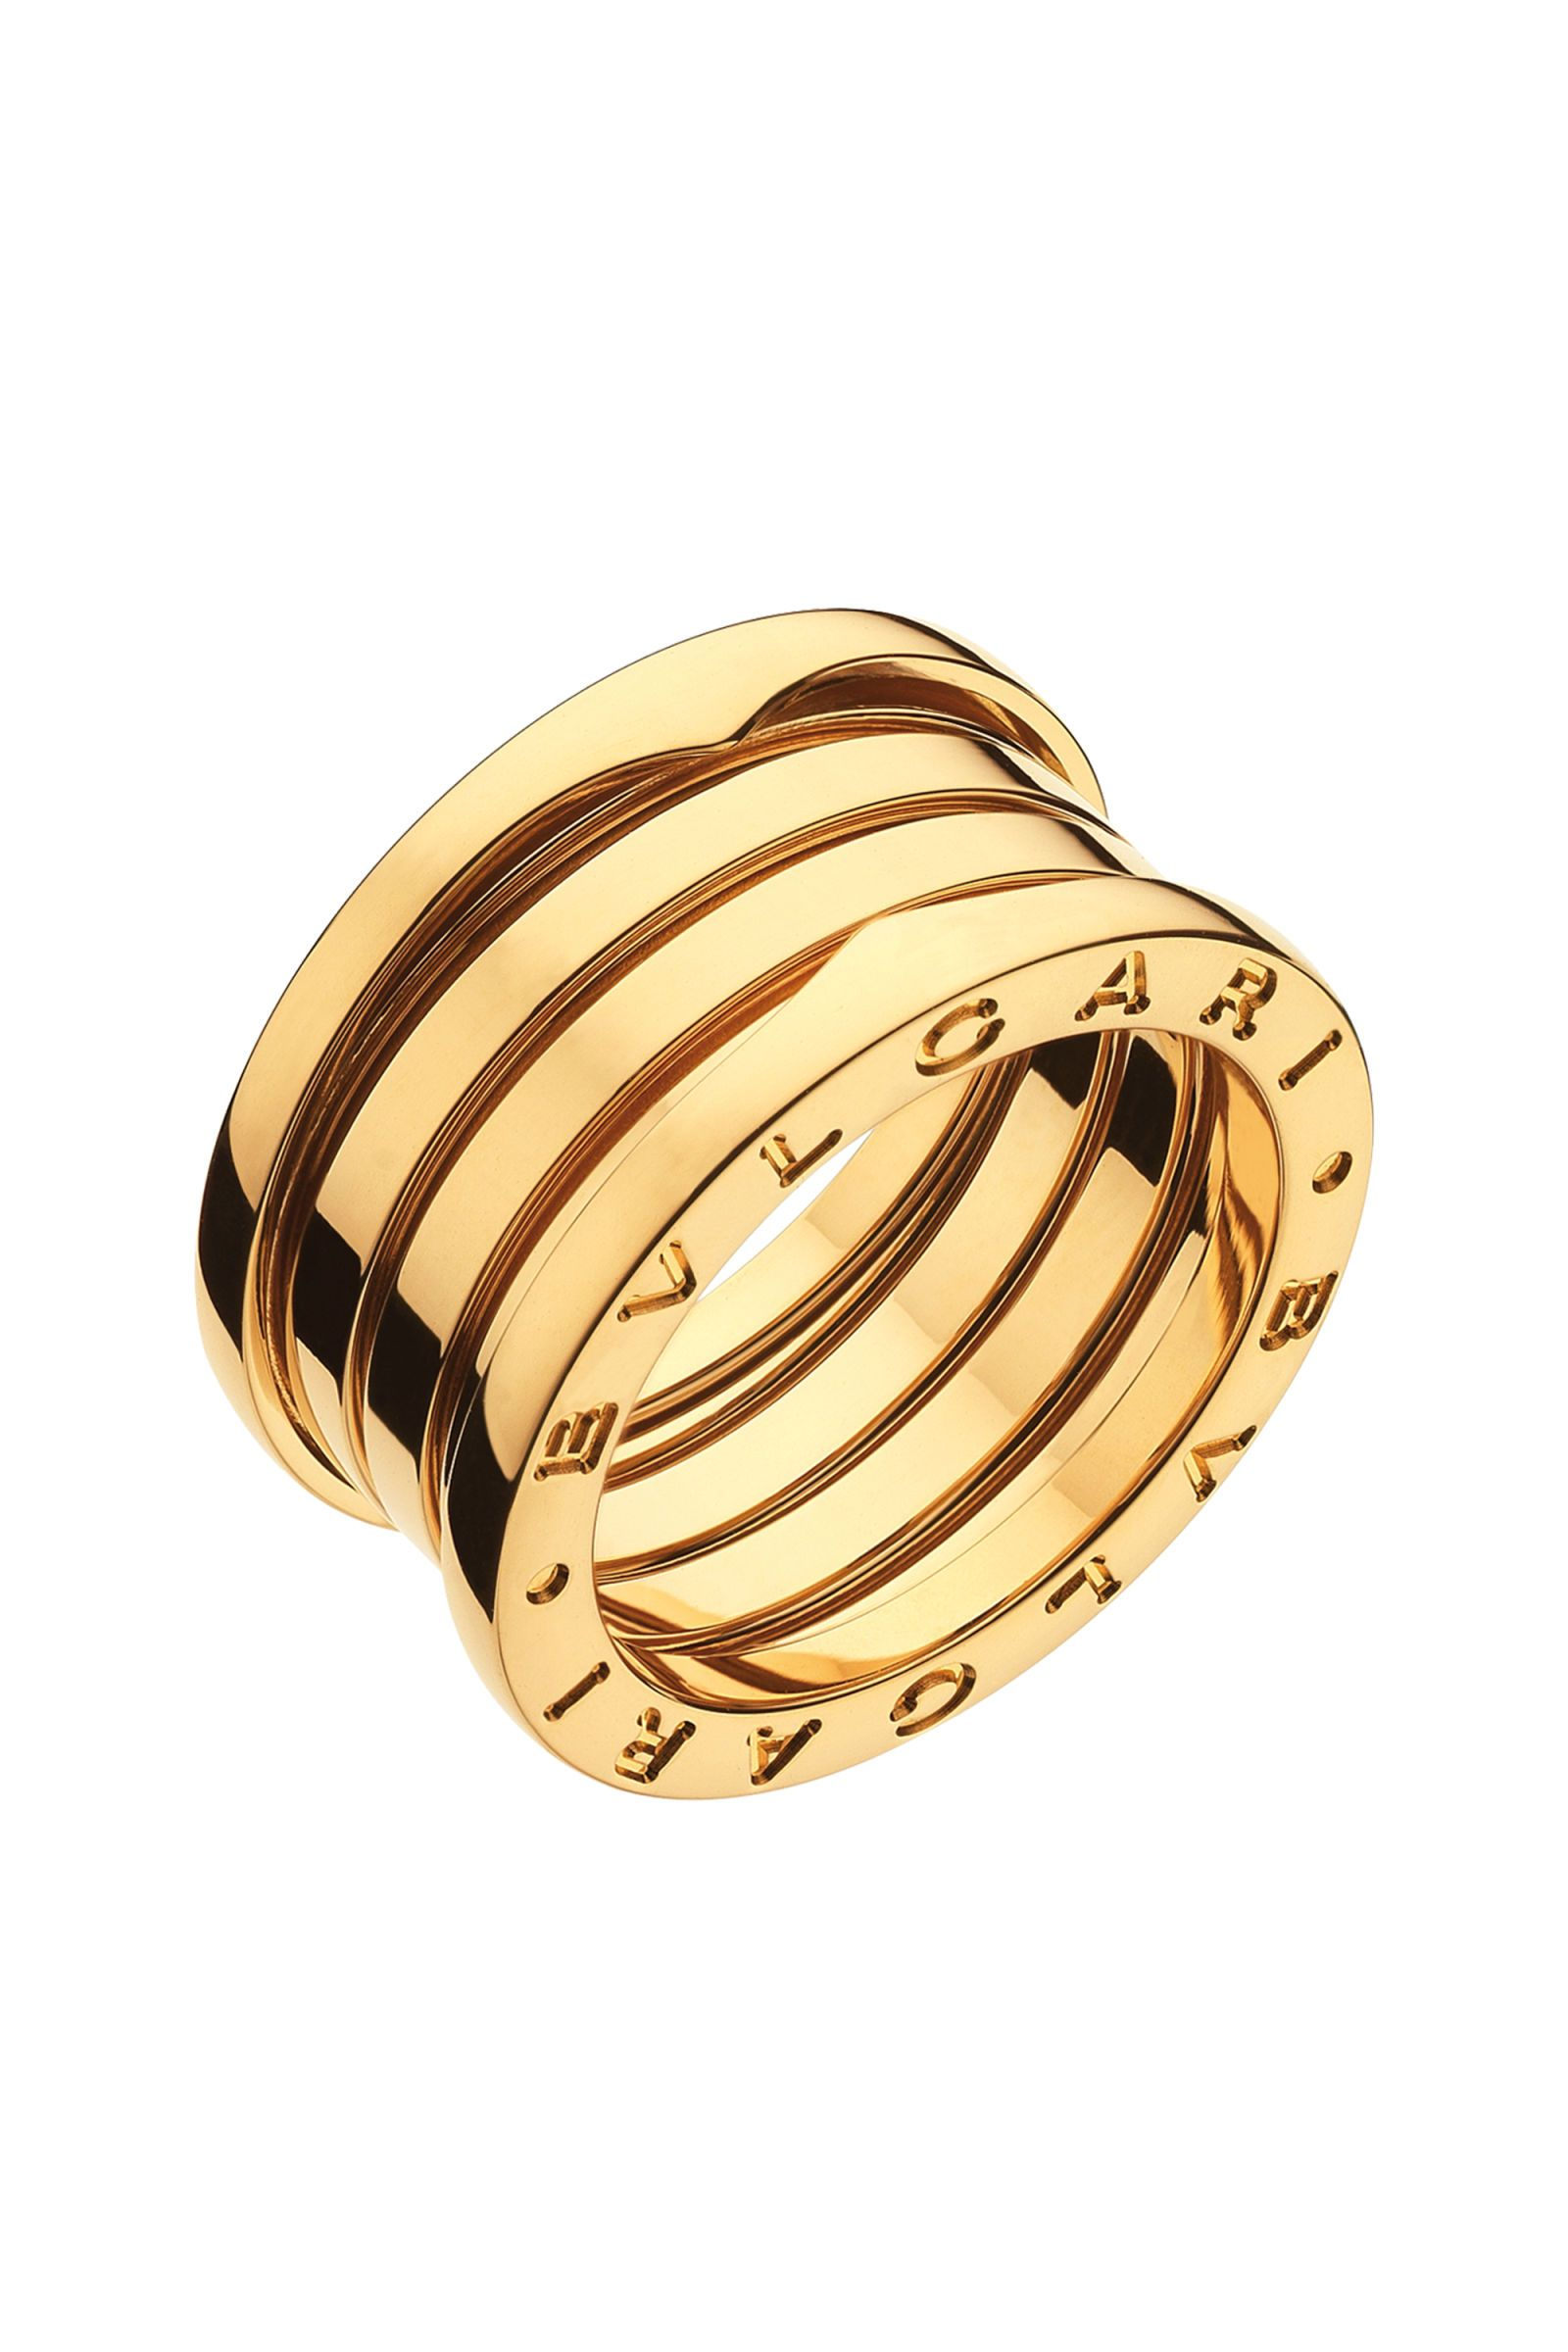 8 Pieces Of Jewelry Worth Investing In Bvlgari Jewelry Jewelry Bvlgari Ring